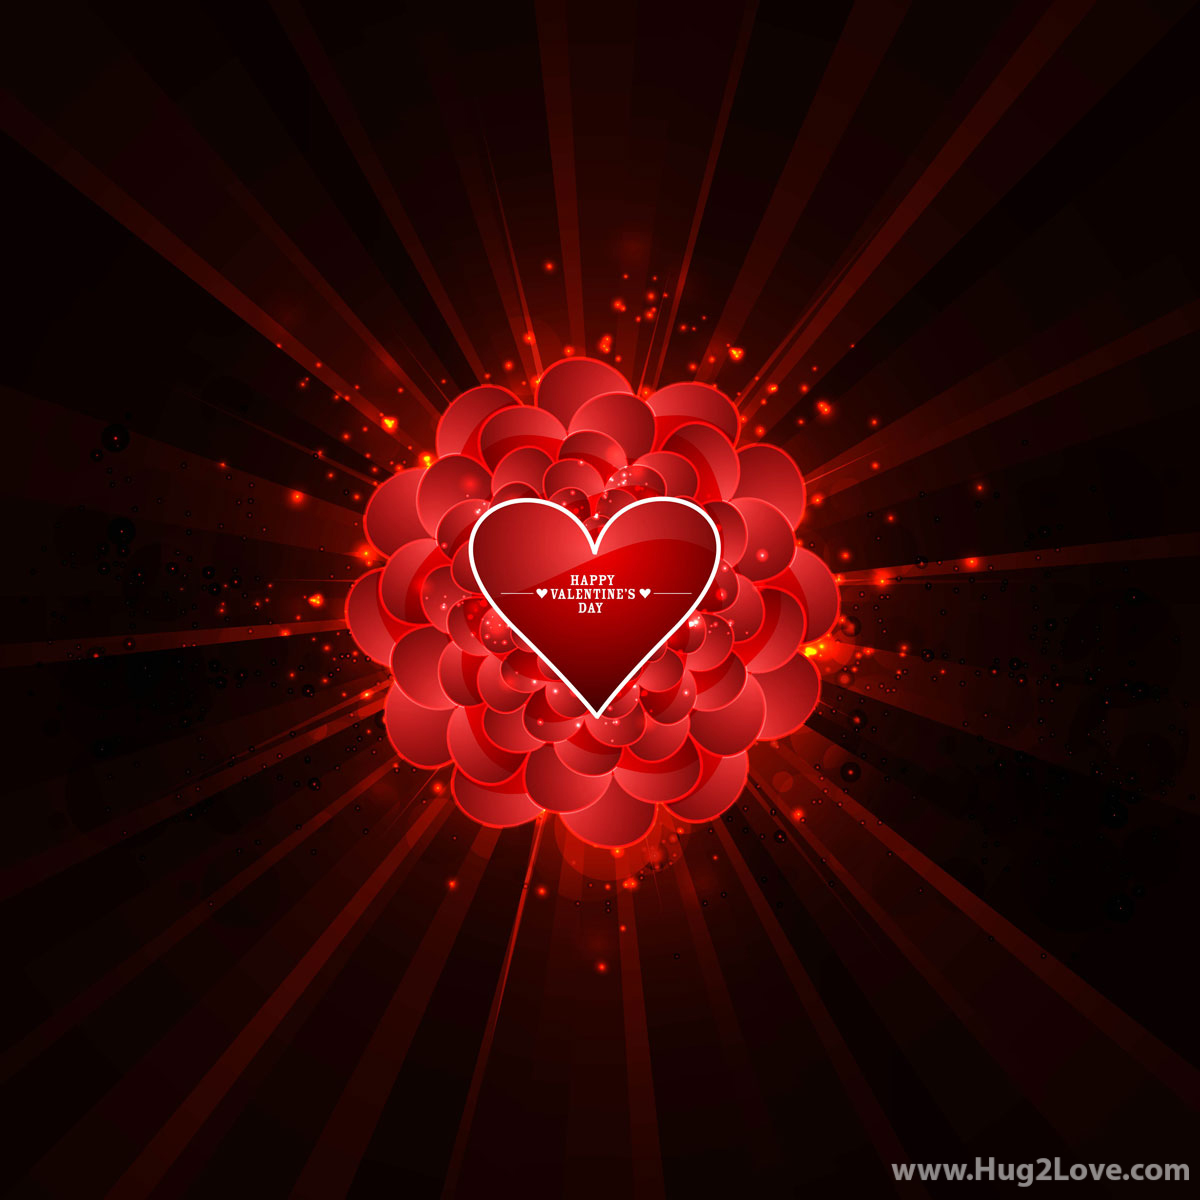 100 Happy Valentines Day Images Wallpapers 2021 1200x1200